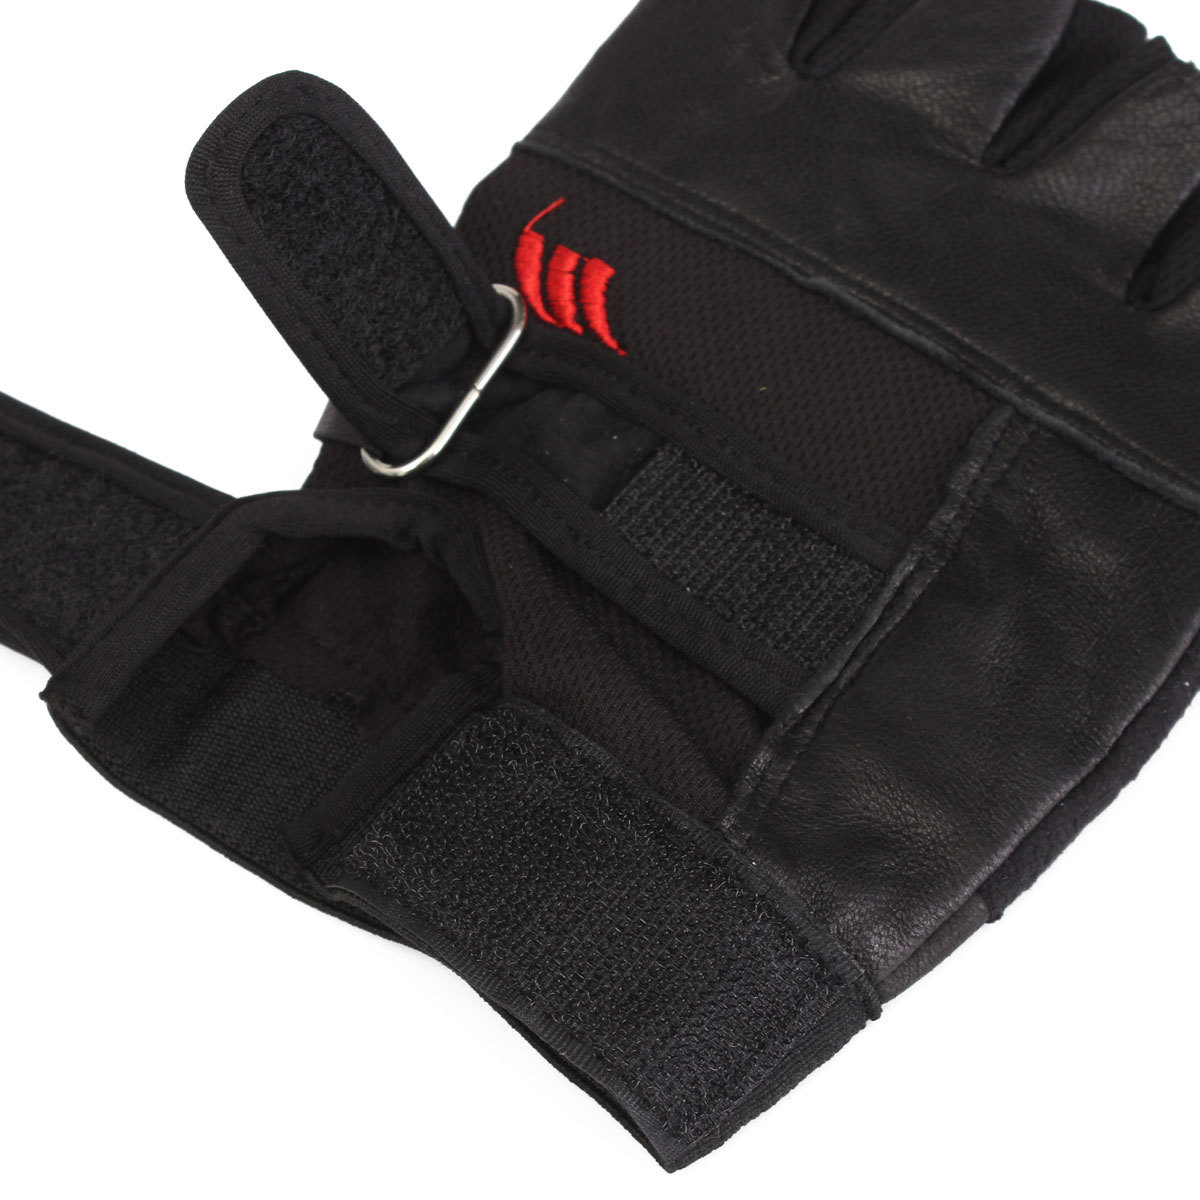 Weight Lifting Gloves Leather Fitness Gym Training Workout: Tactical Men's Leather Weight Lifting Gloves Training Gym